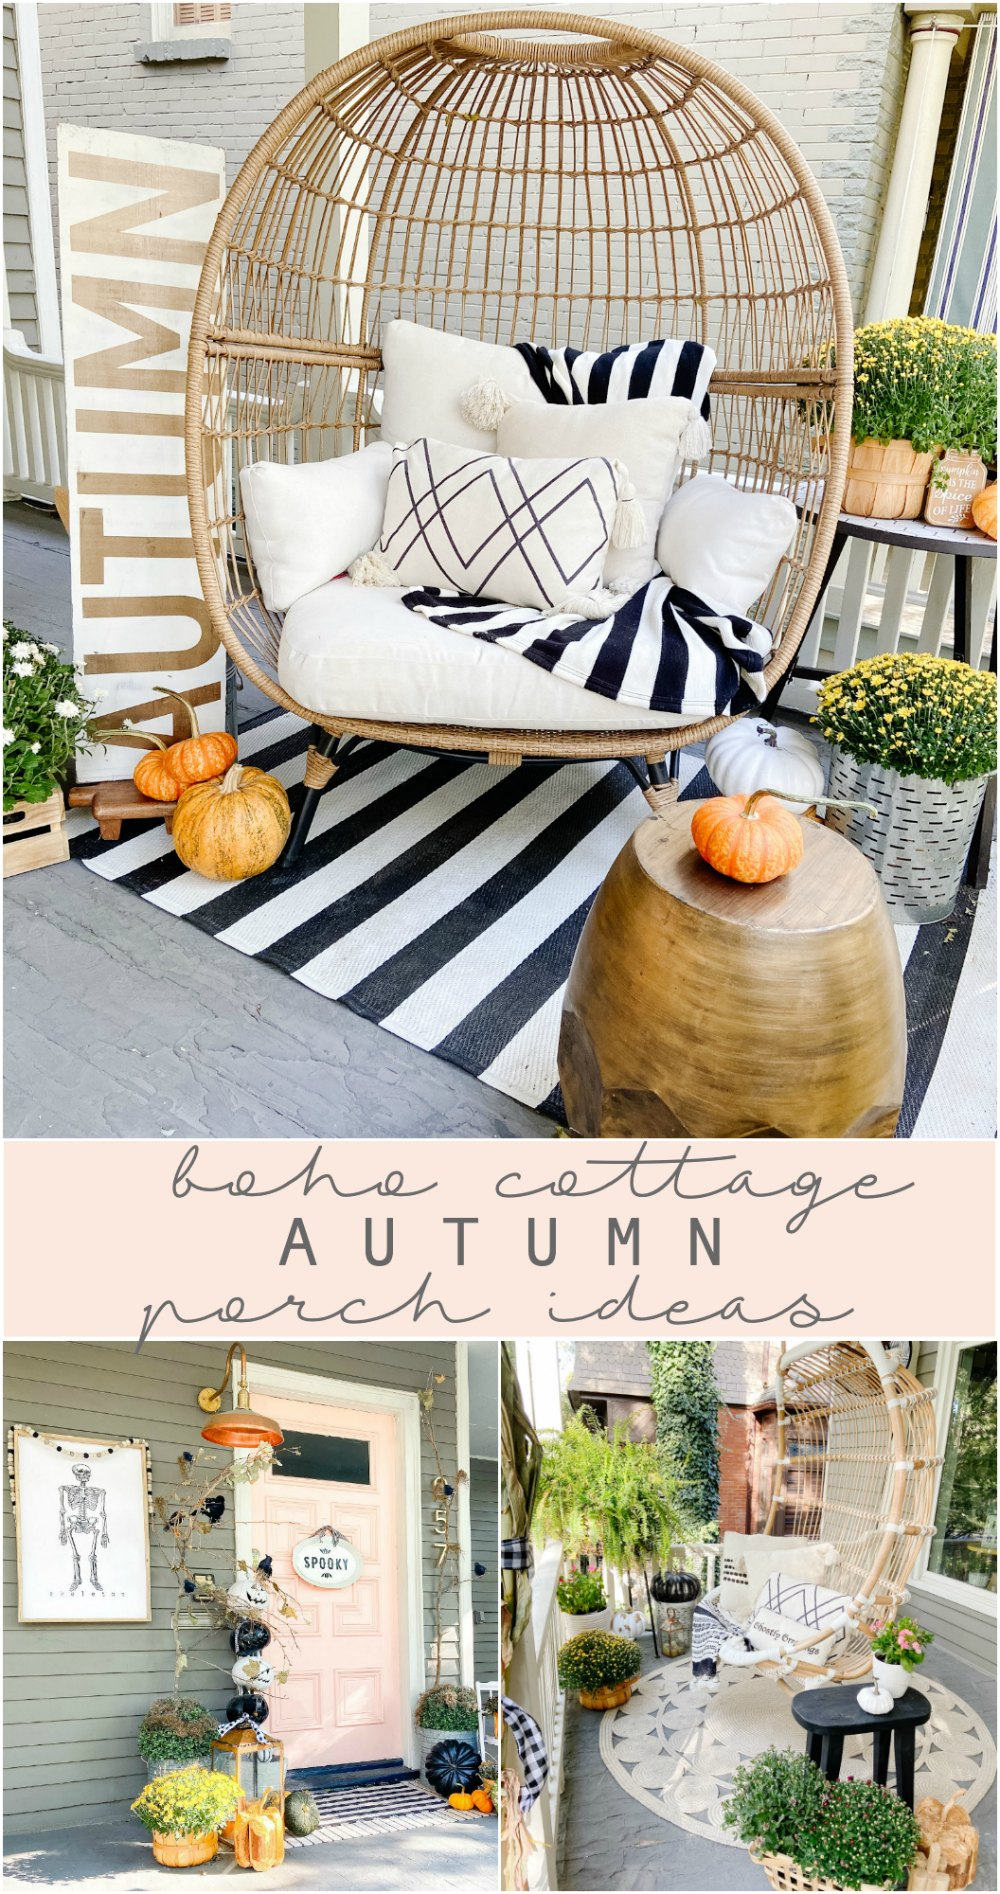 Boho Cottage Fall Porch Ideas. Use rattan furniture, potted flowers, pumpkins and cozy pillows to create a warm and welcoming fall porch.